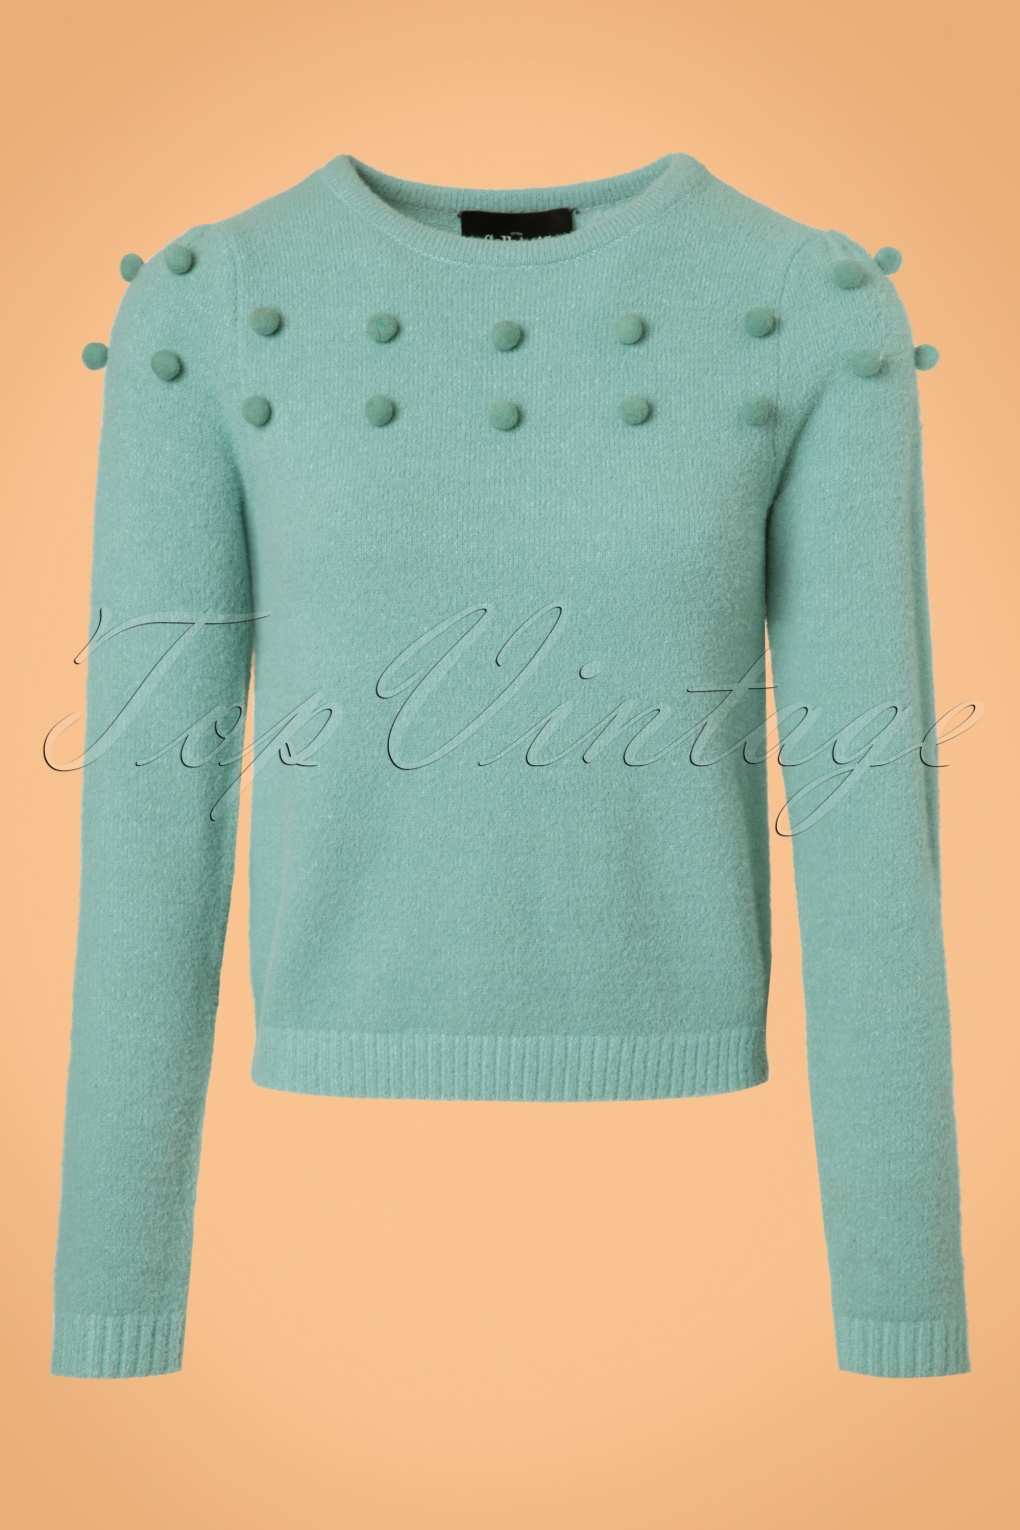 Vintage Sweaters: Cable Knit, Fair Isle Cardigans & Sweaters 50s Barbara Pom Pom Jumper in Mint Blue £51.51 AT vintagedancer.com